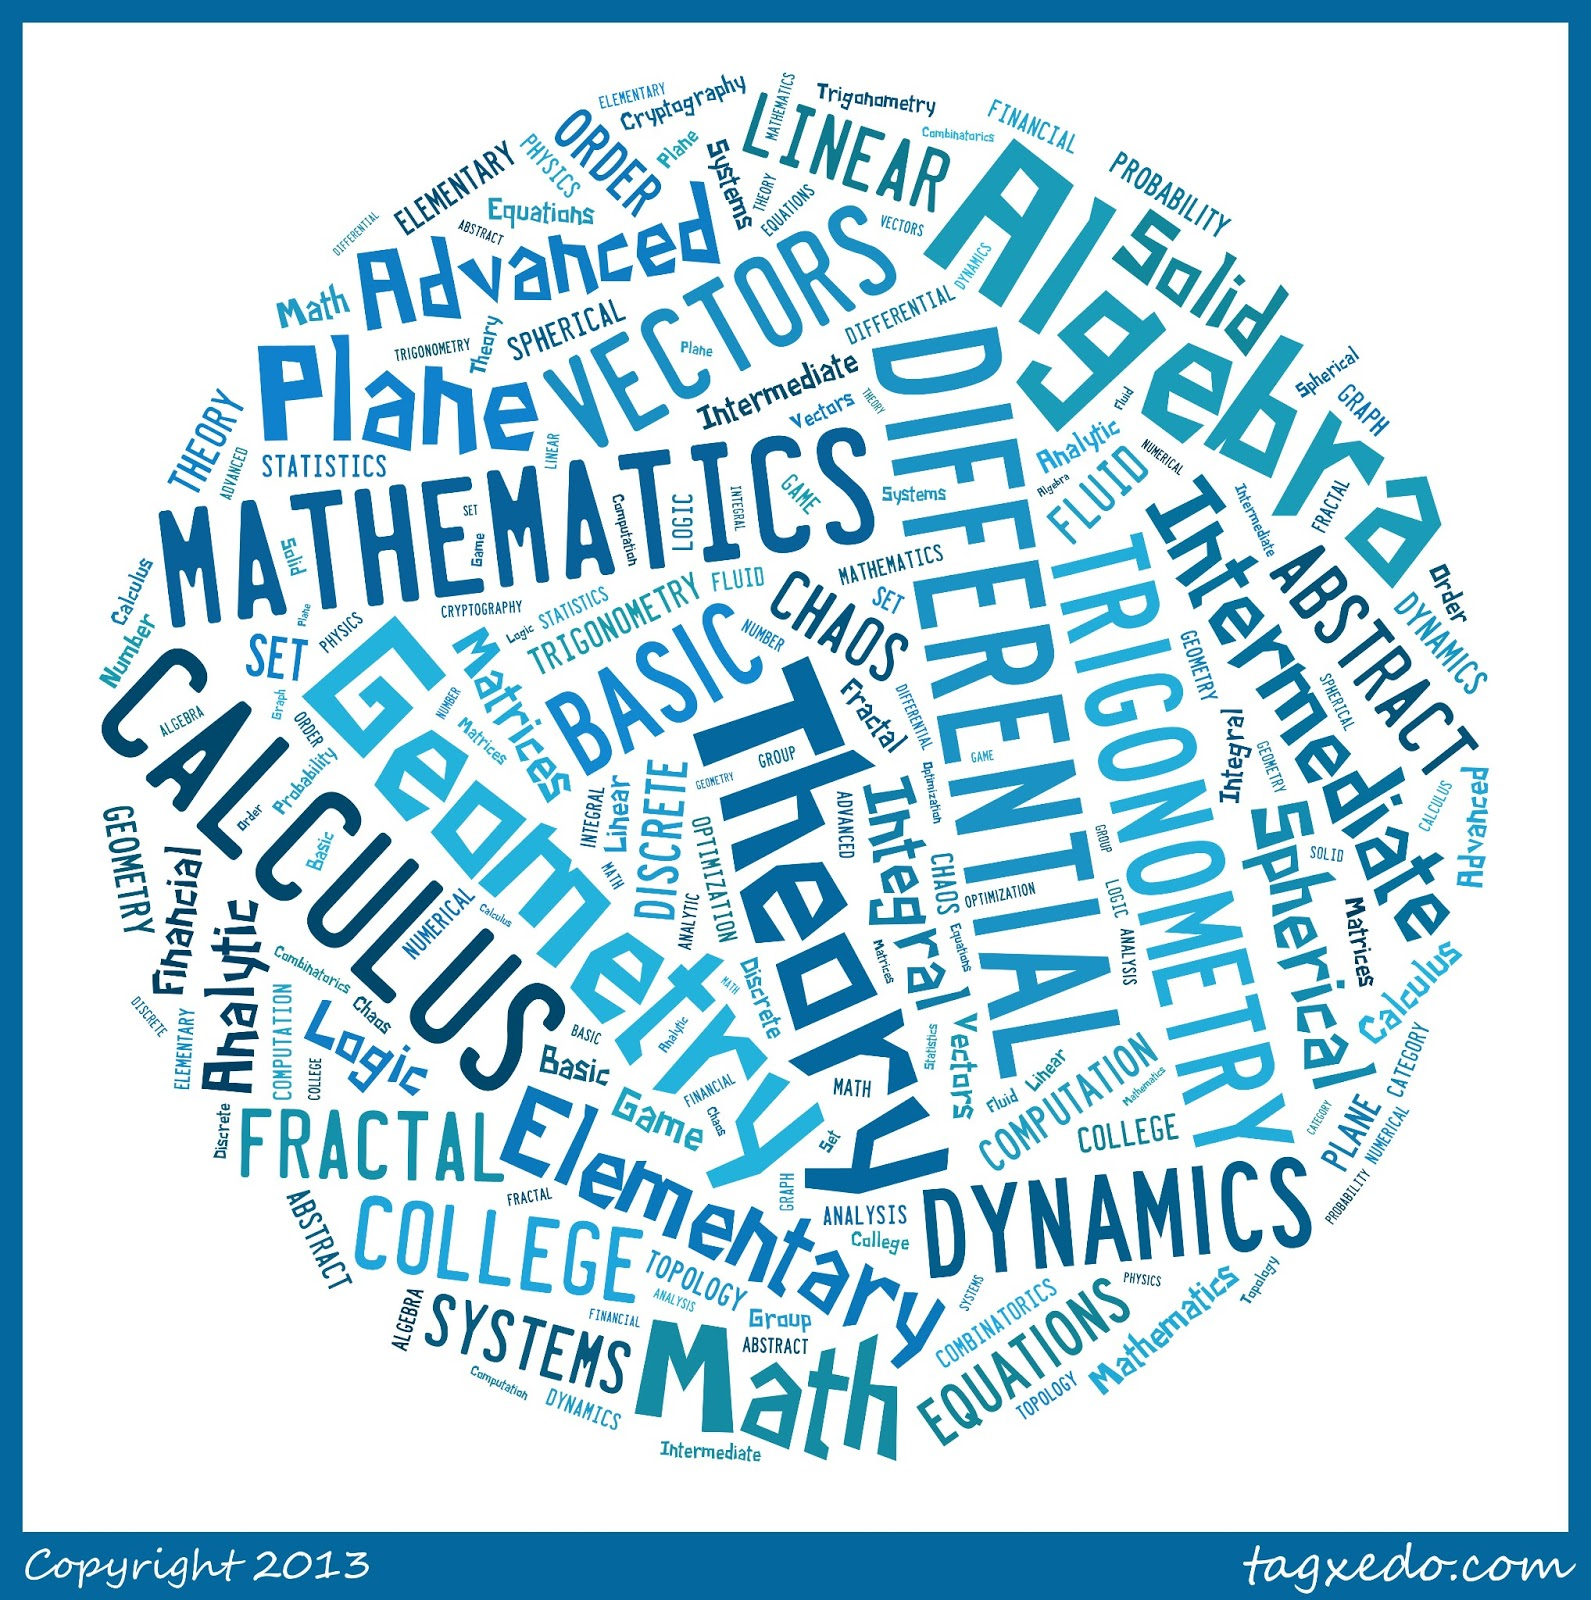 LEARN AT MATH REALM ~ Mathematics Realm